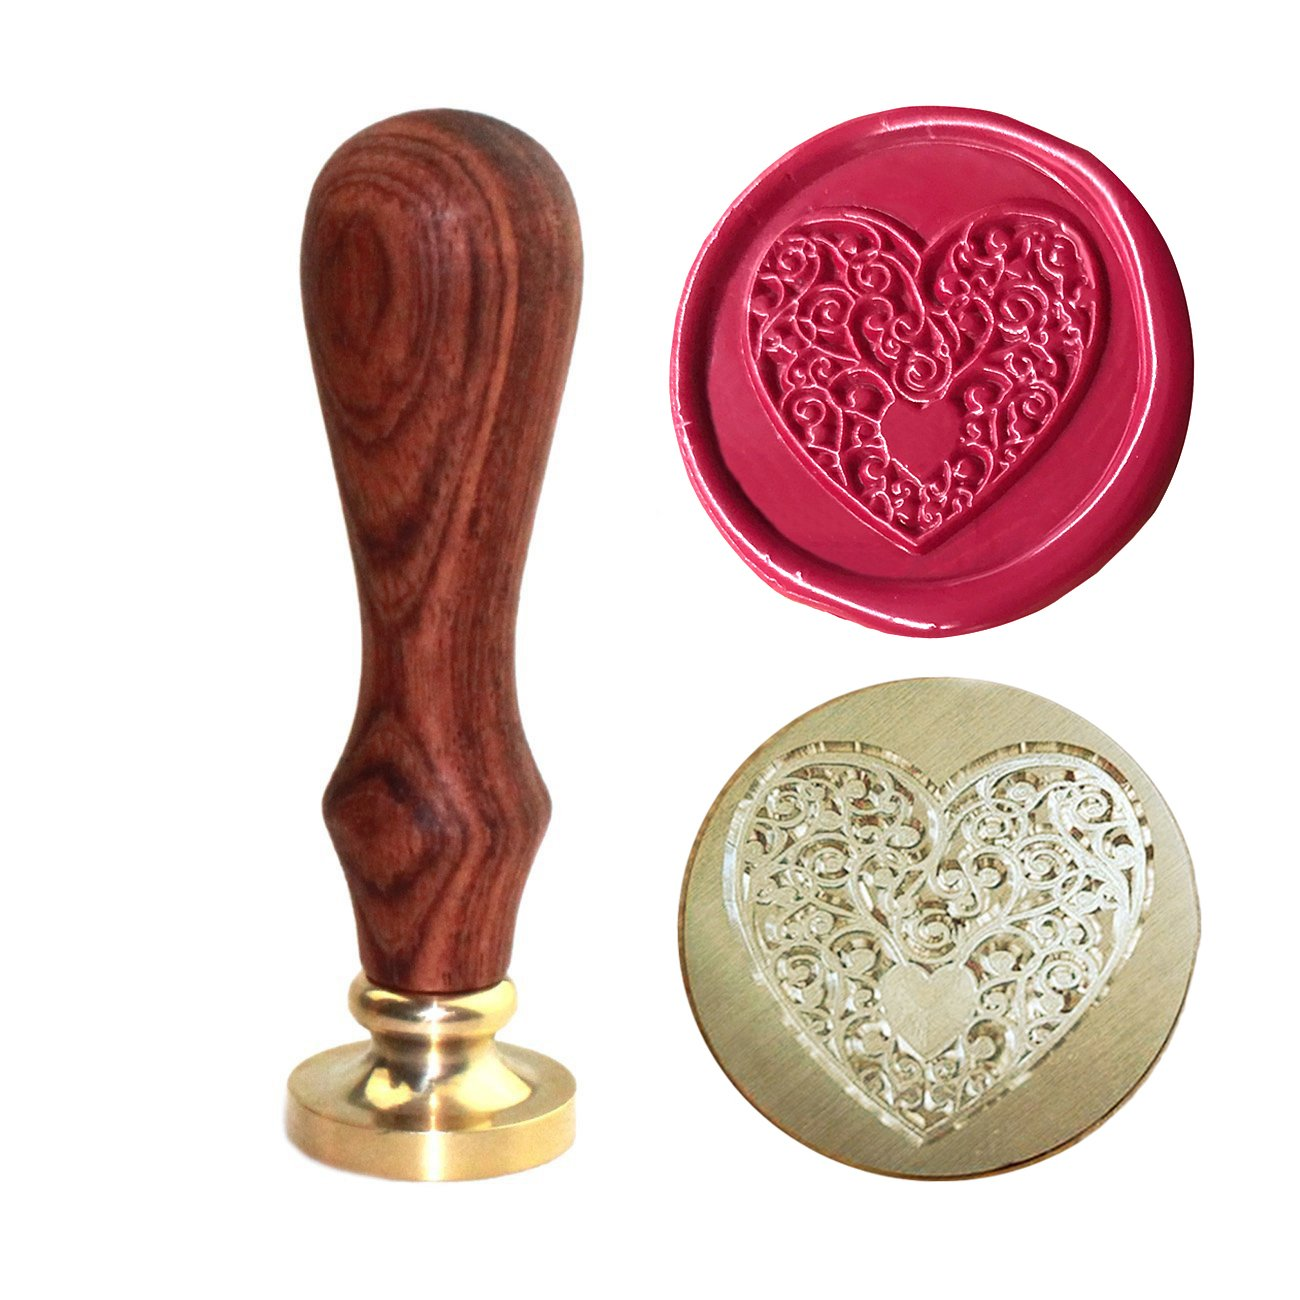 Bee Wax Seal Stamp, [Also Available in Other Patterns], Botokon Vintage Retro Brass Head Wooden Handle Removable Sealing Stamp, Ideal for Embellishment of Envelopes, Invitations, Wine Packages, etc 4336845604